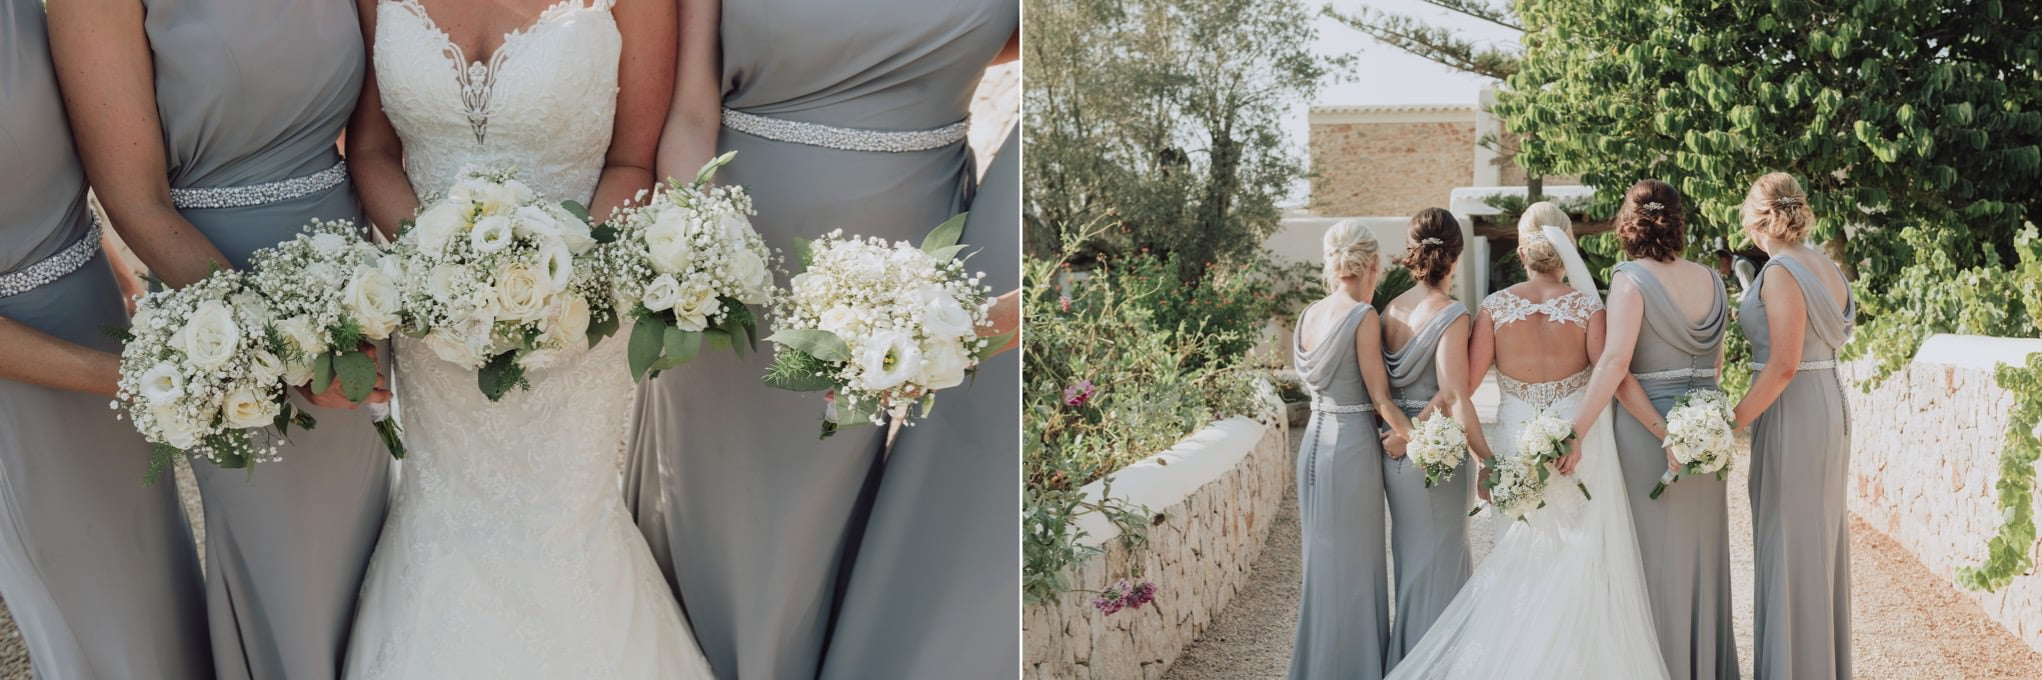 Can gall; ibiza wedding; donna murray photography56